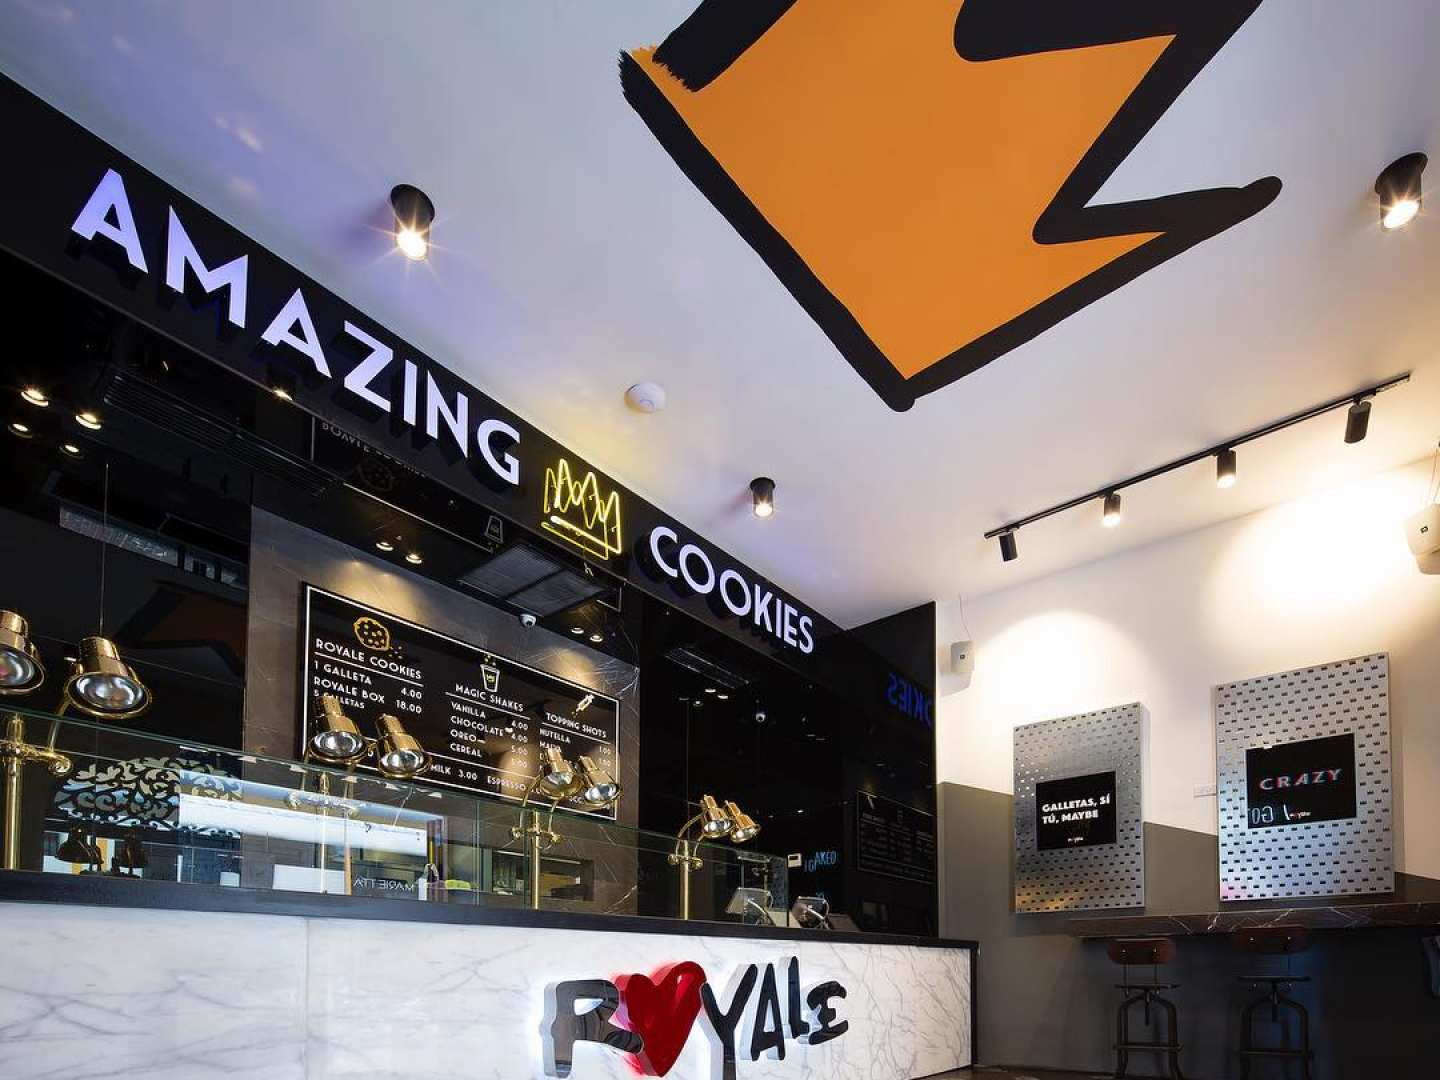 Royale Cookie Bar (Casco Antiguo)